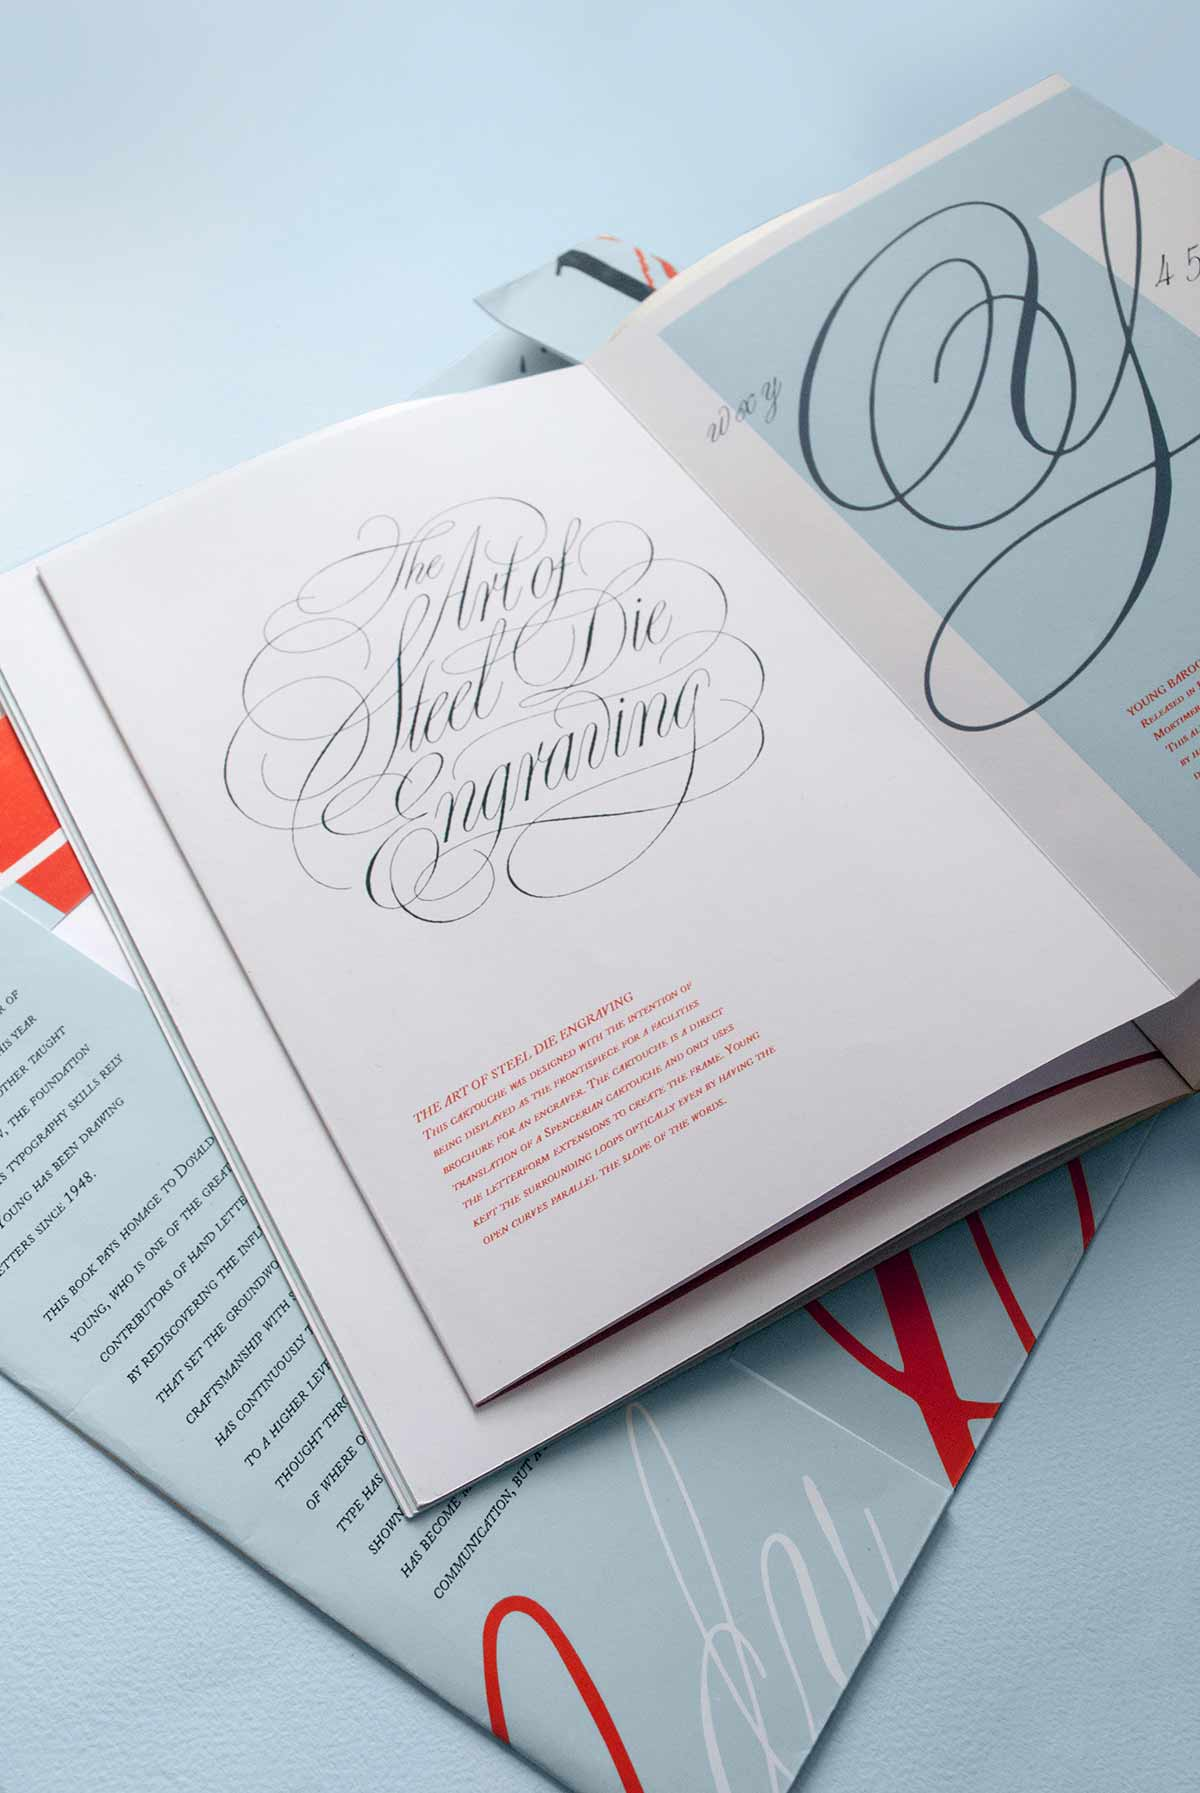 danielle_will_design-doyald-young-handlettering-book4.jpg